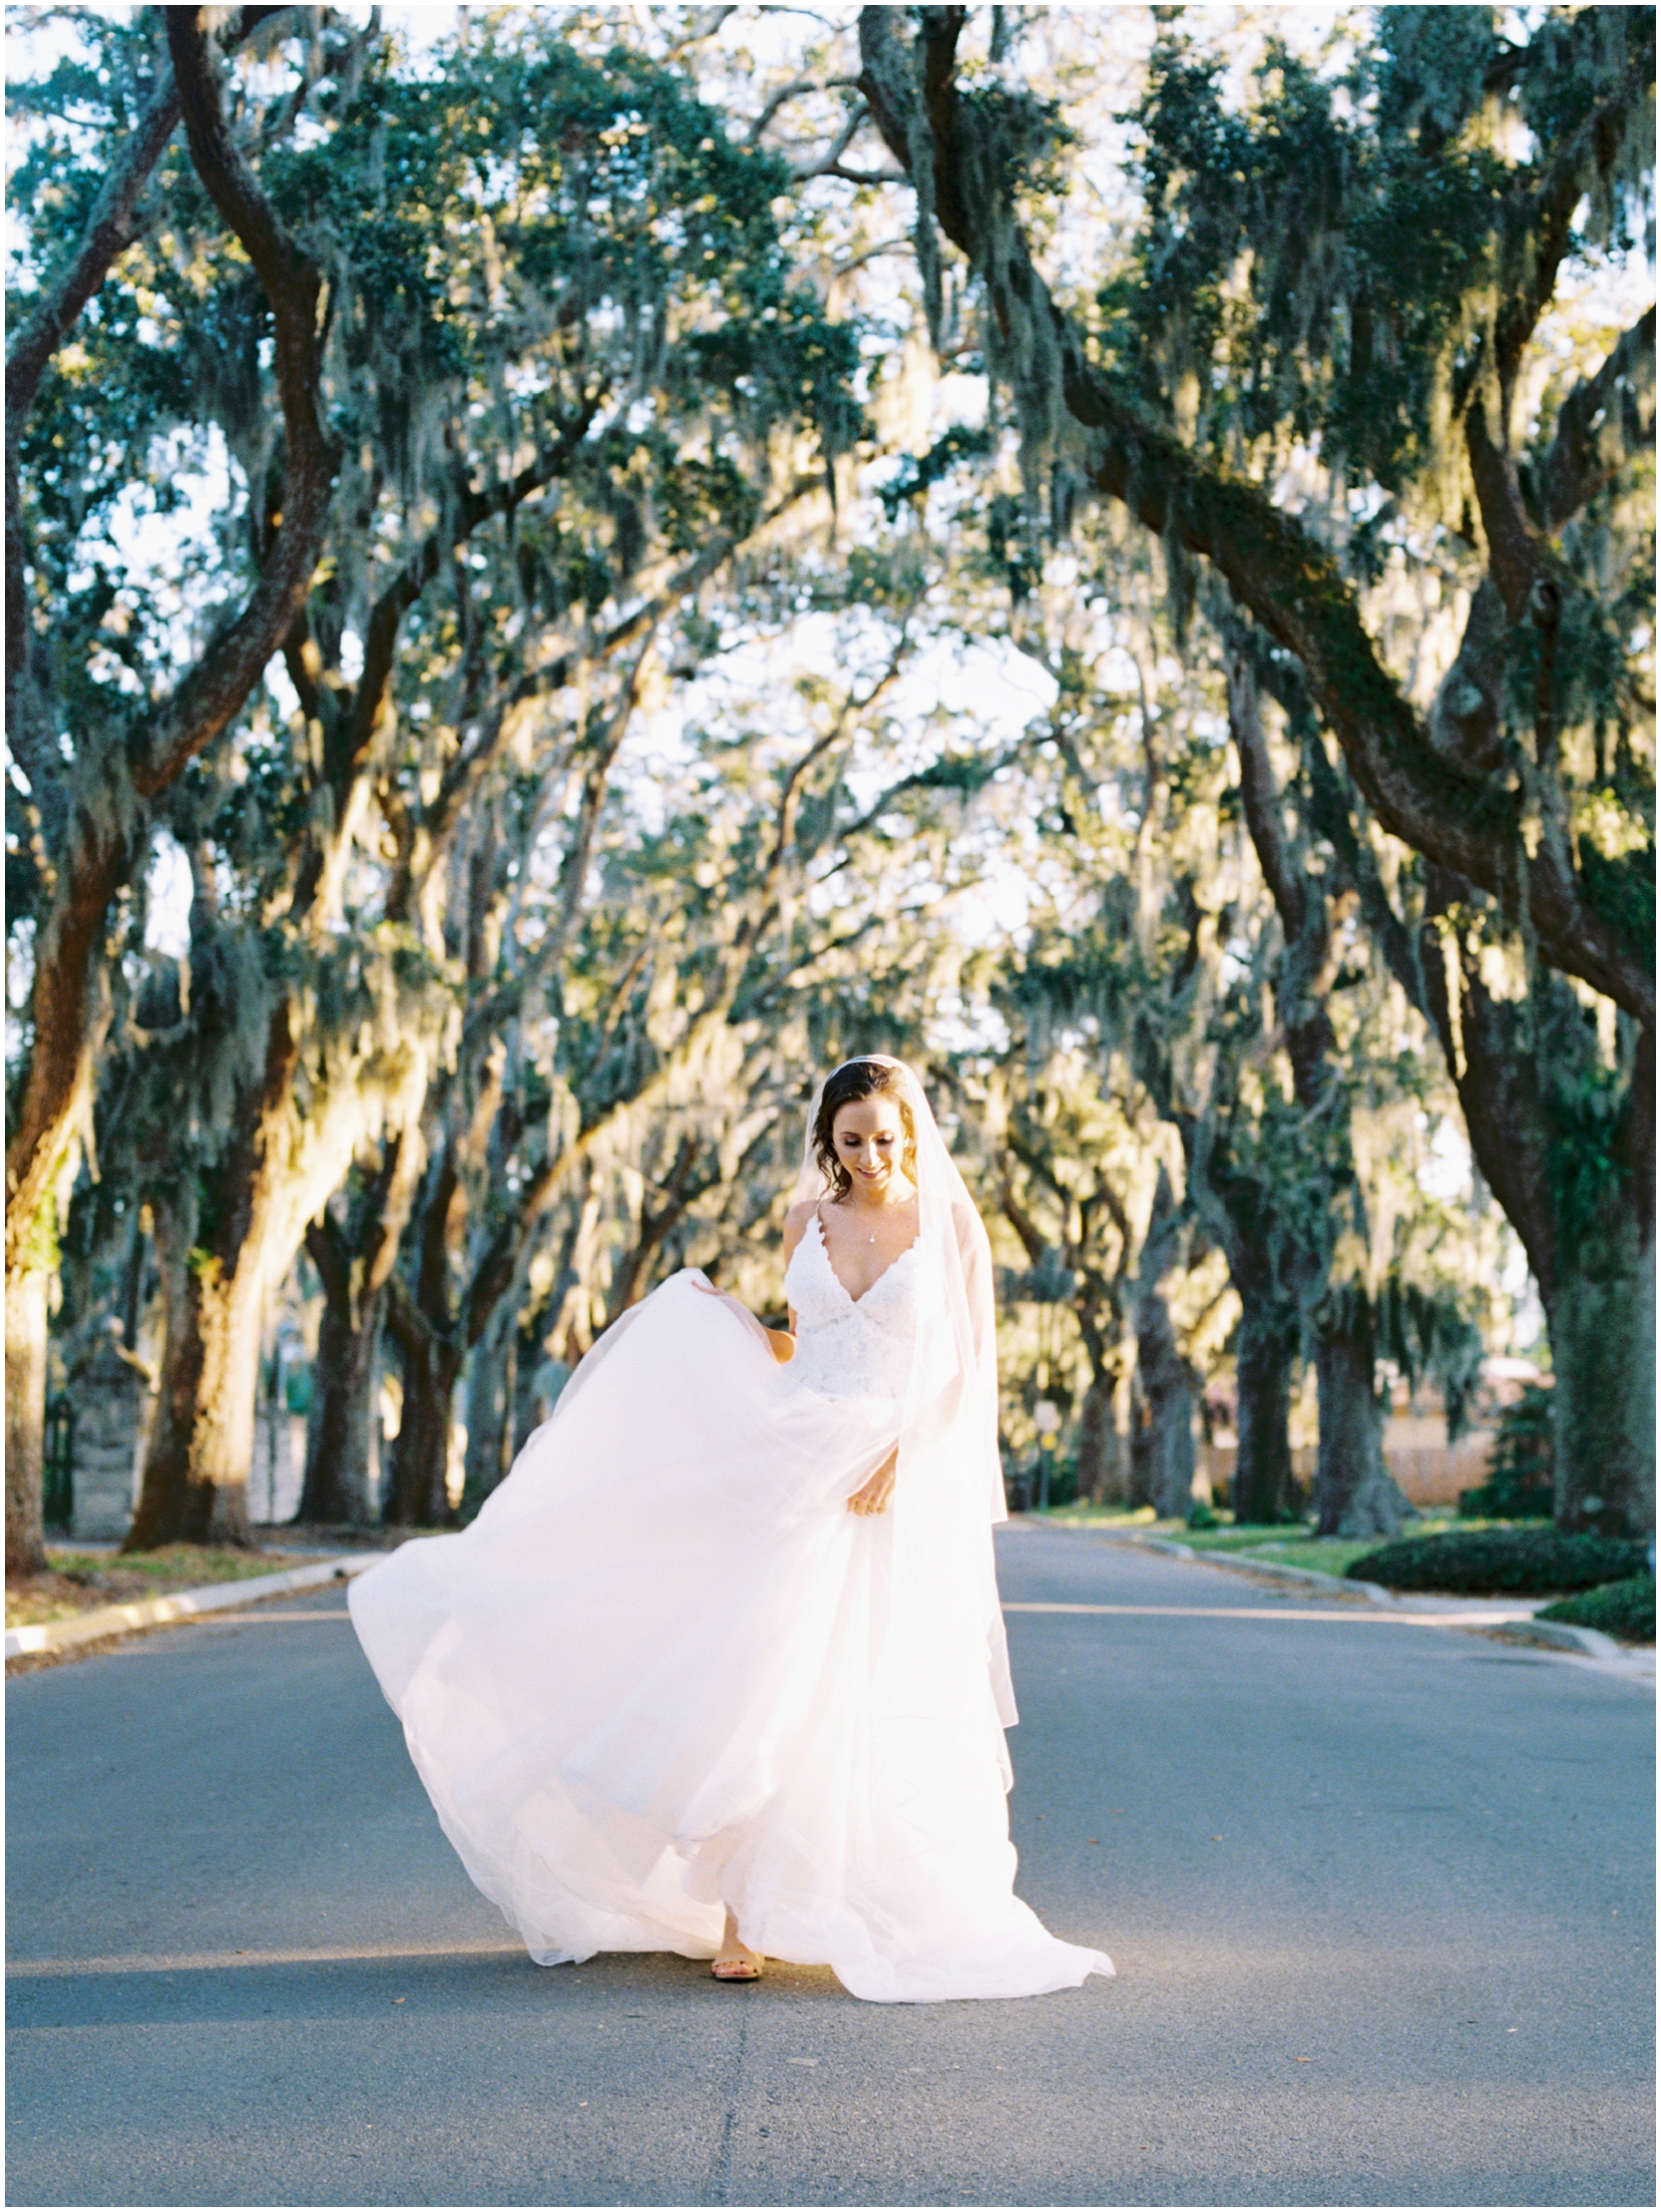 Lisa Silva Photography -Bridal Portrait Session in St. Augustine, Florida- Jacksonville and North East Florida Fine Art Film Photographer_0025.jpg